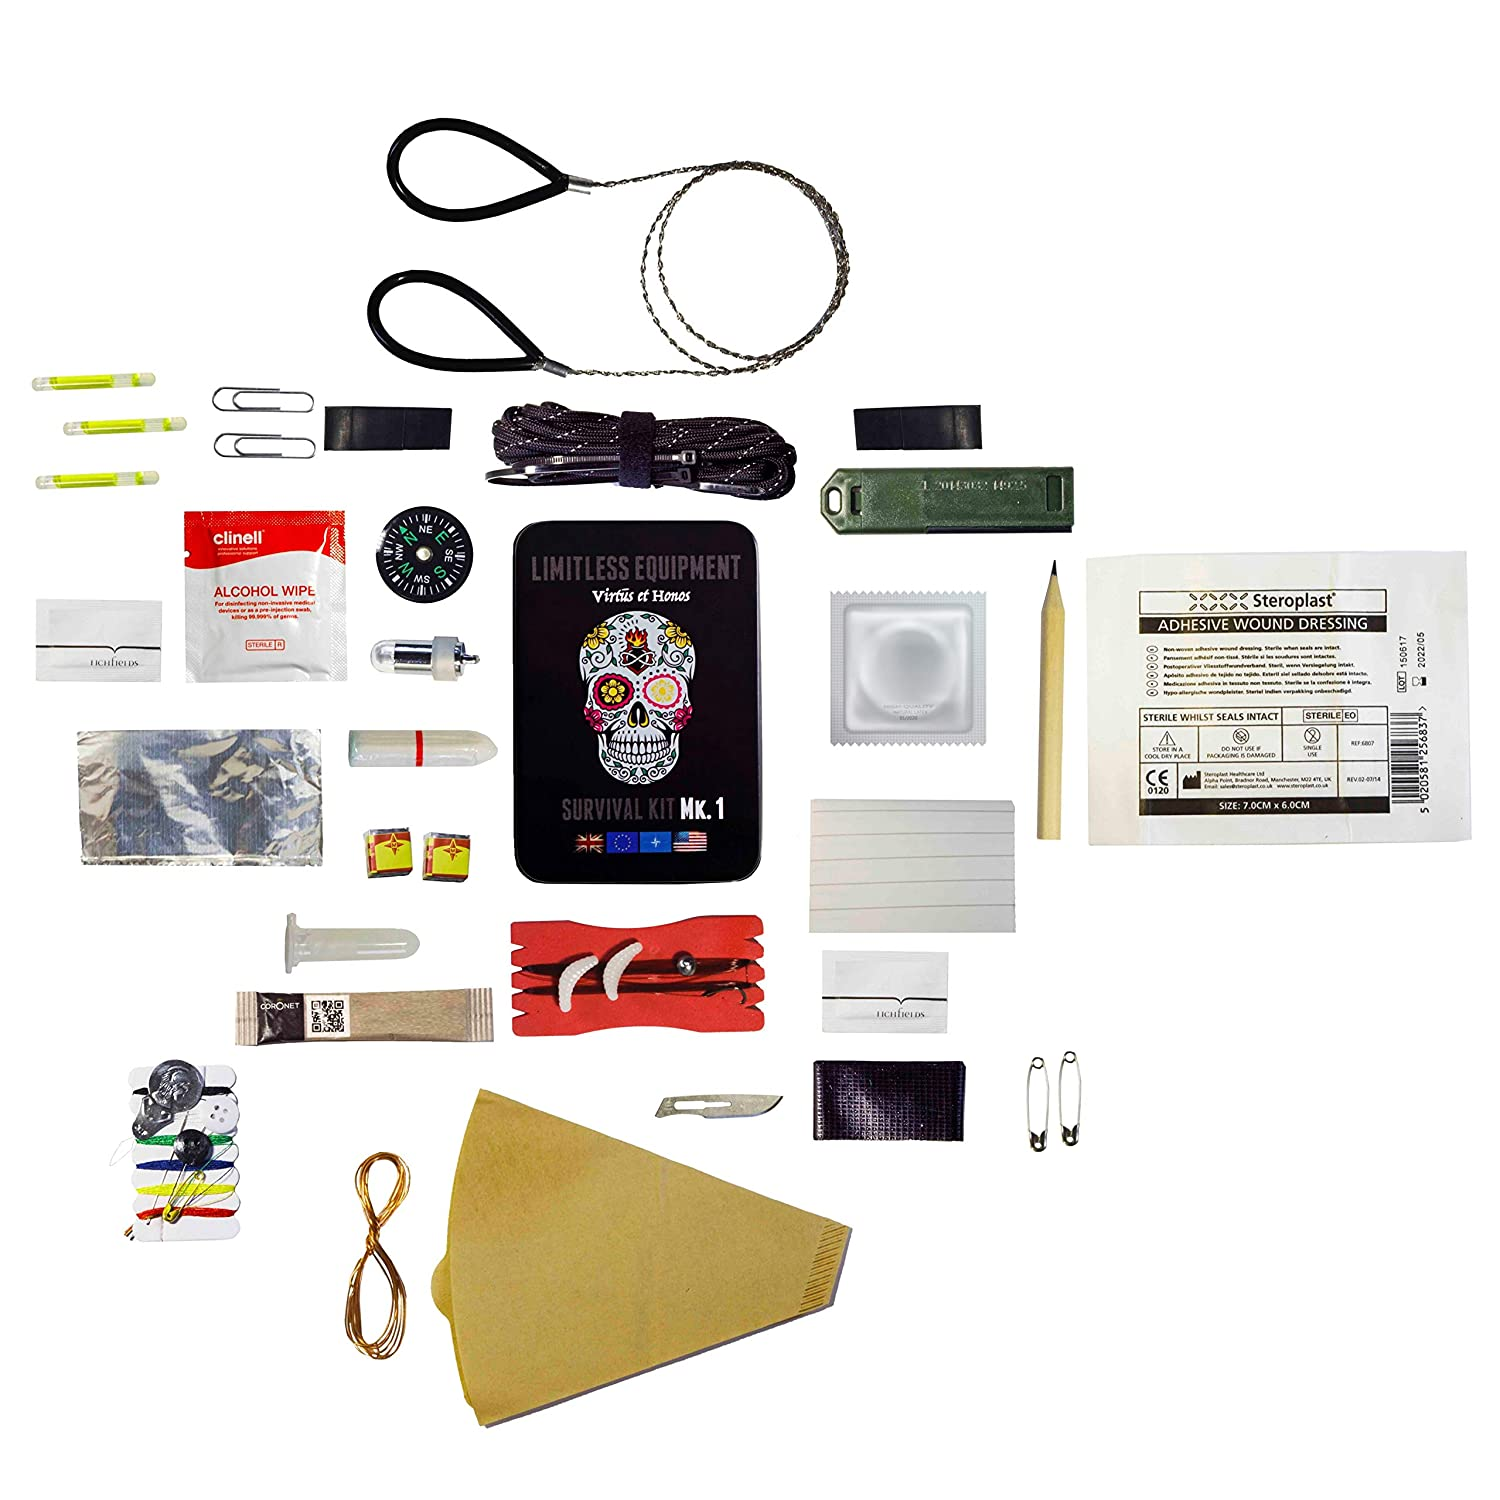 Limitless Equipment Mark 1 Survival Kit UK Made, Pocket Size, pro Level Gear. 40 Items inc. Emergency LED, Fishing kit, fire Making, firecord and More